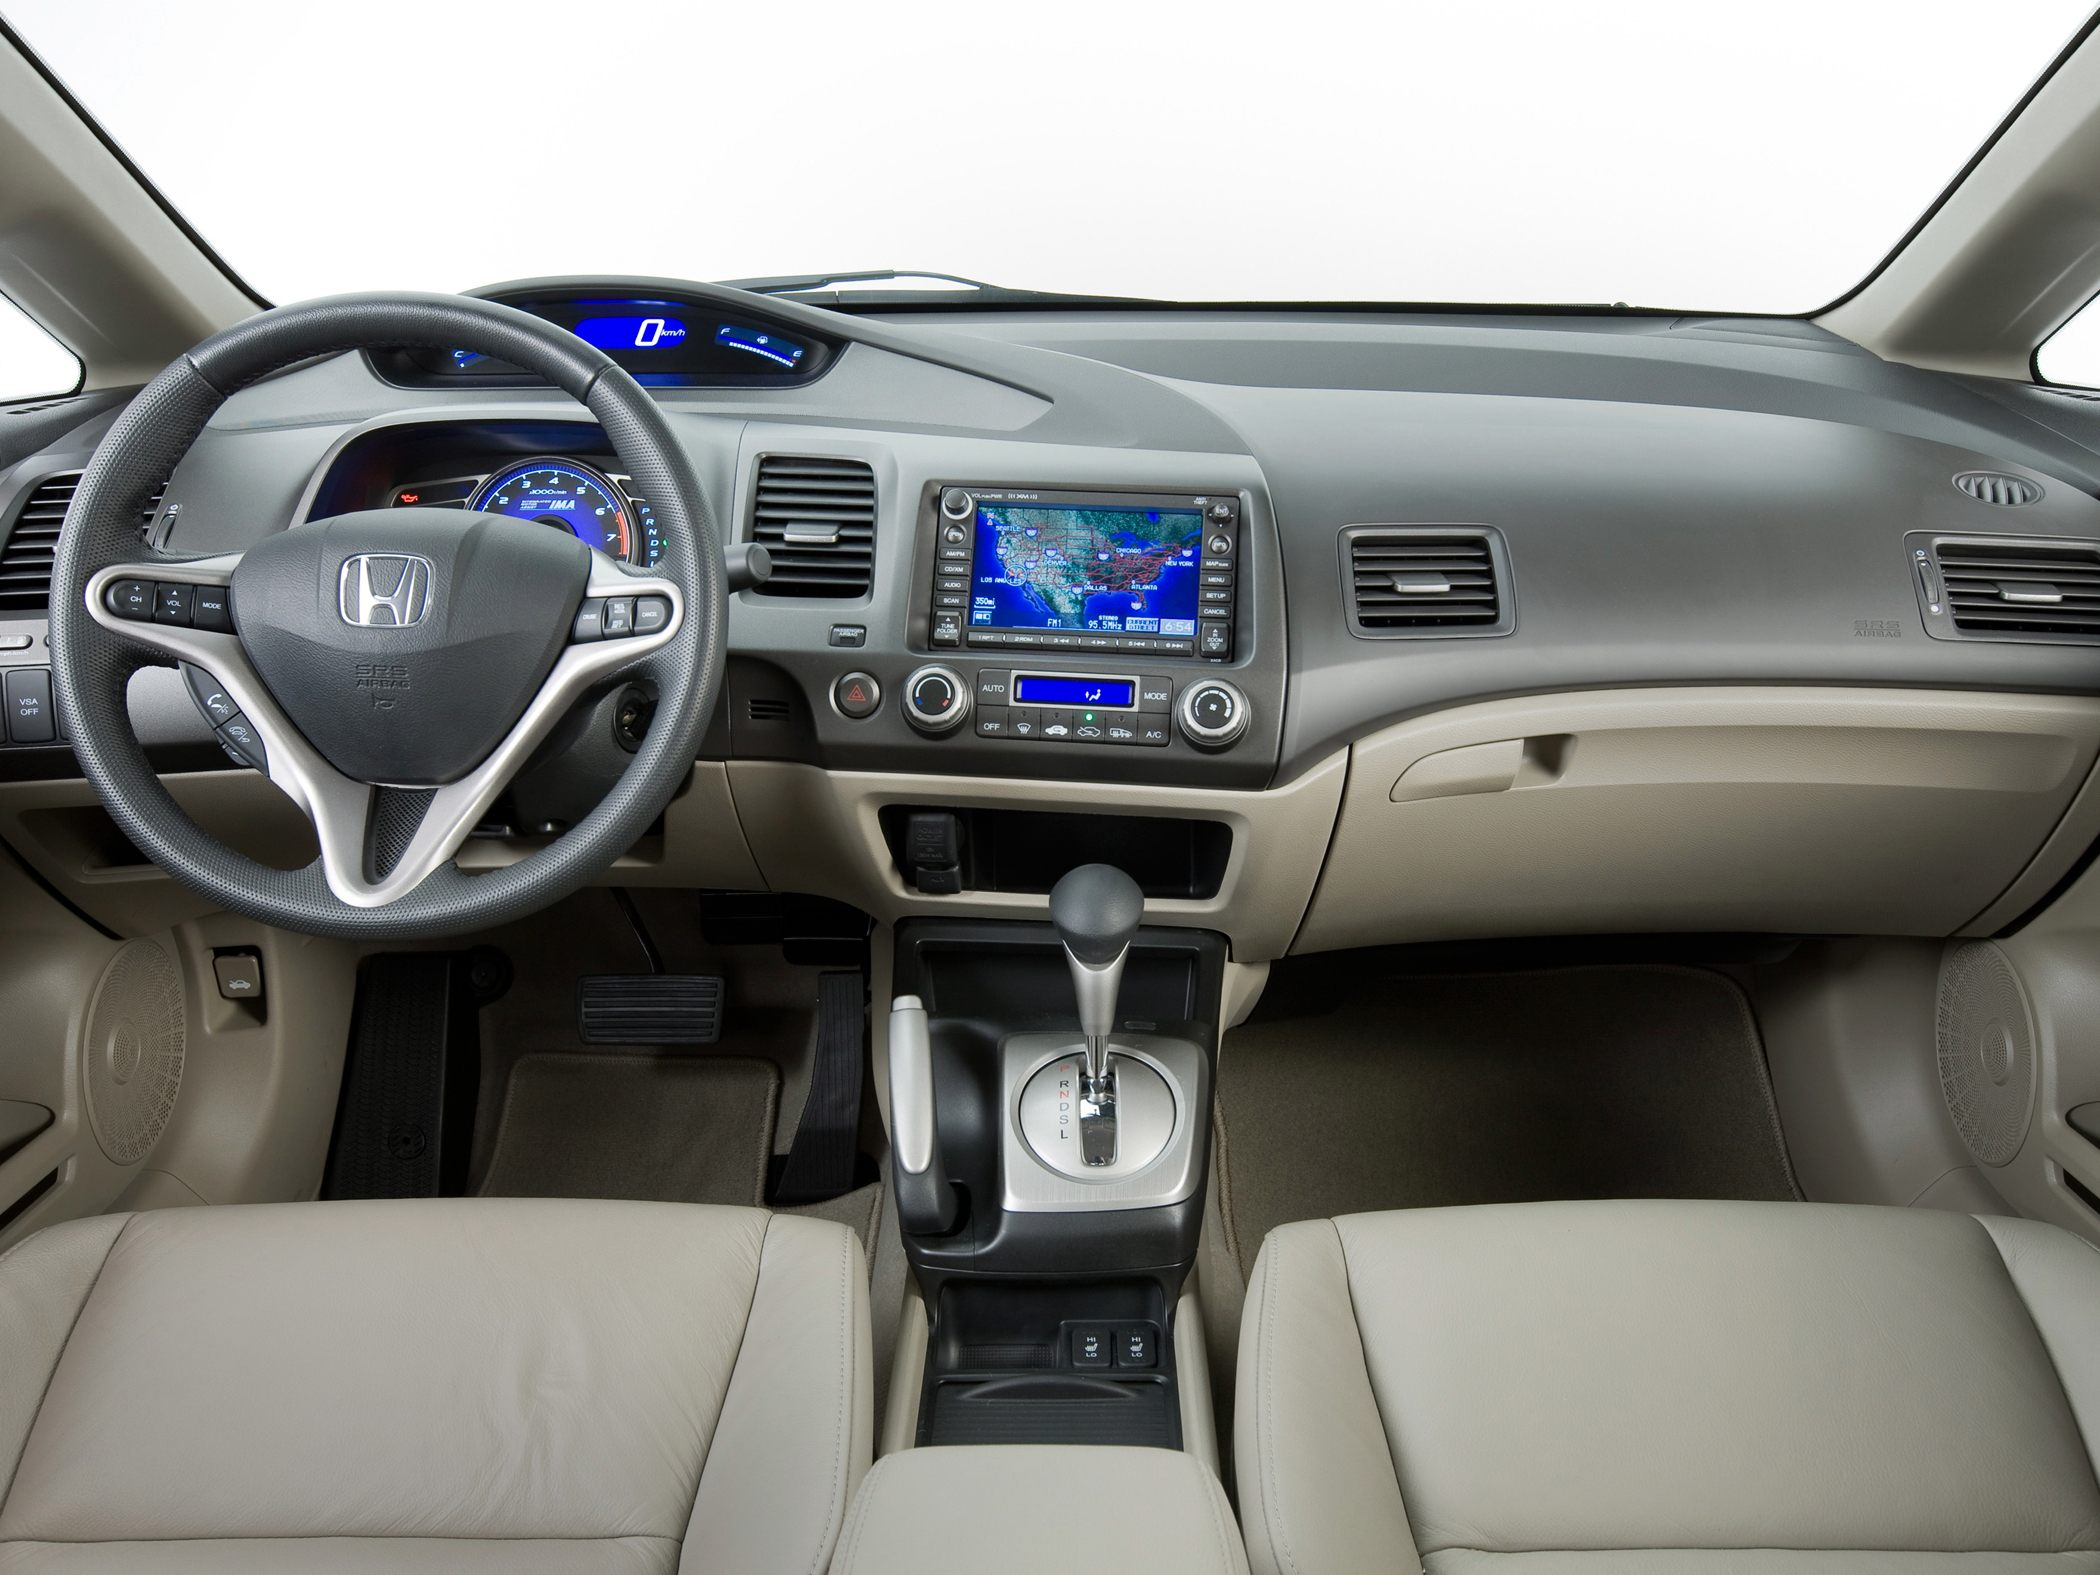 Honda Civic Hybrid Interieur